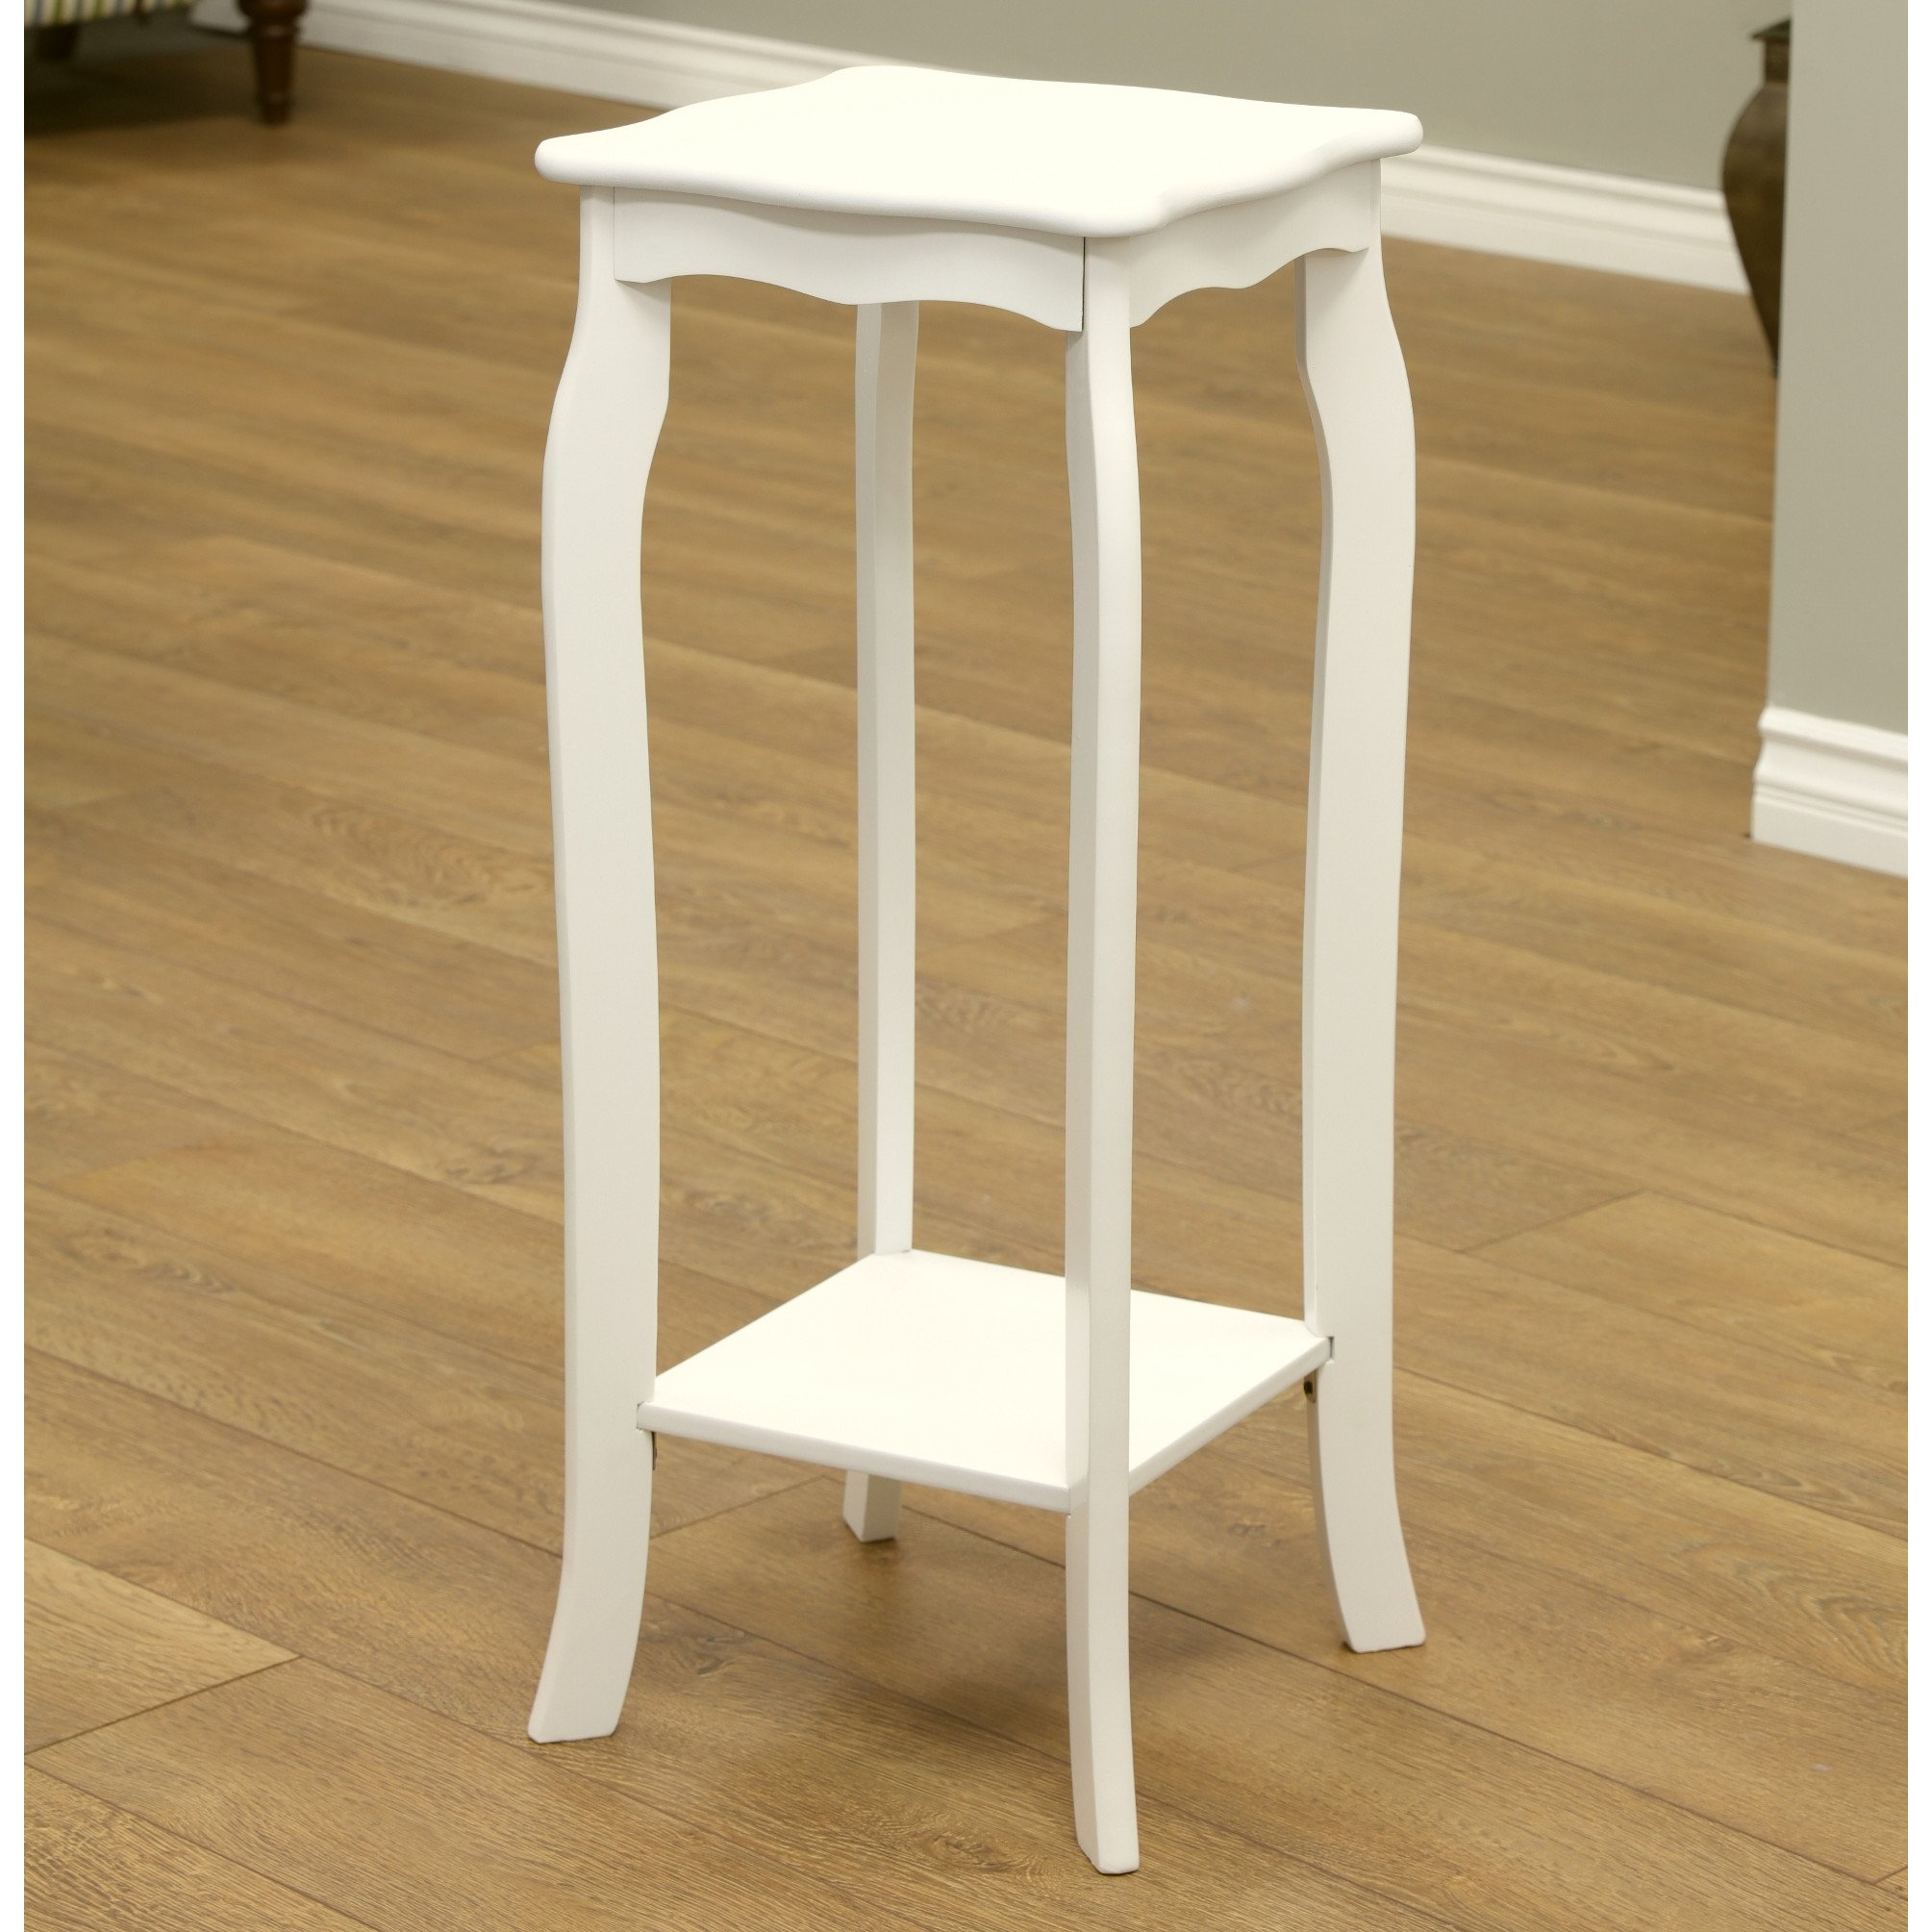 30'' Transitional Eco Friendly Entryway Telephone/Plant Stand in White